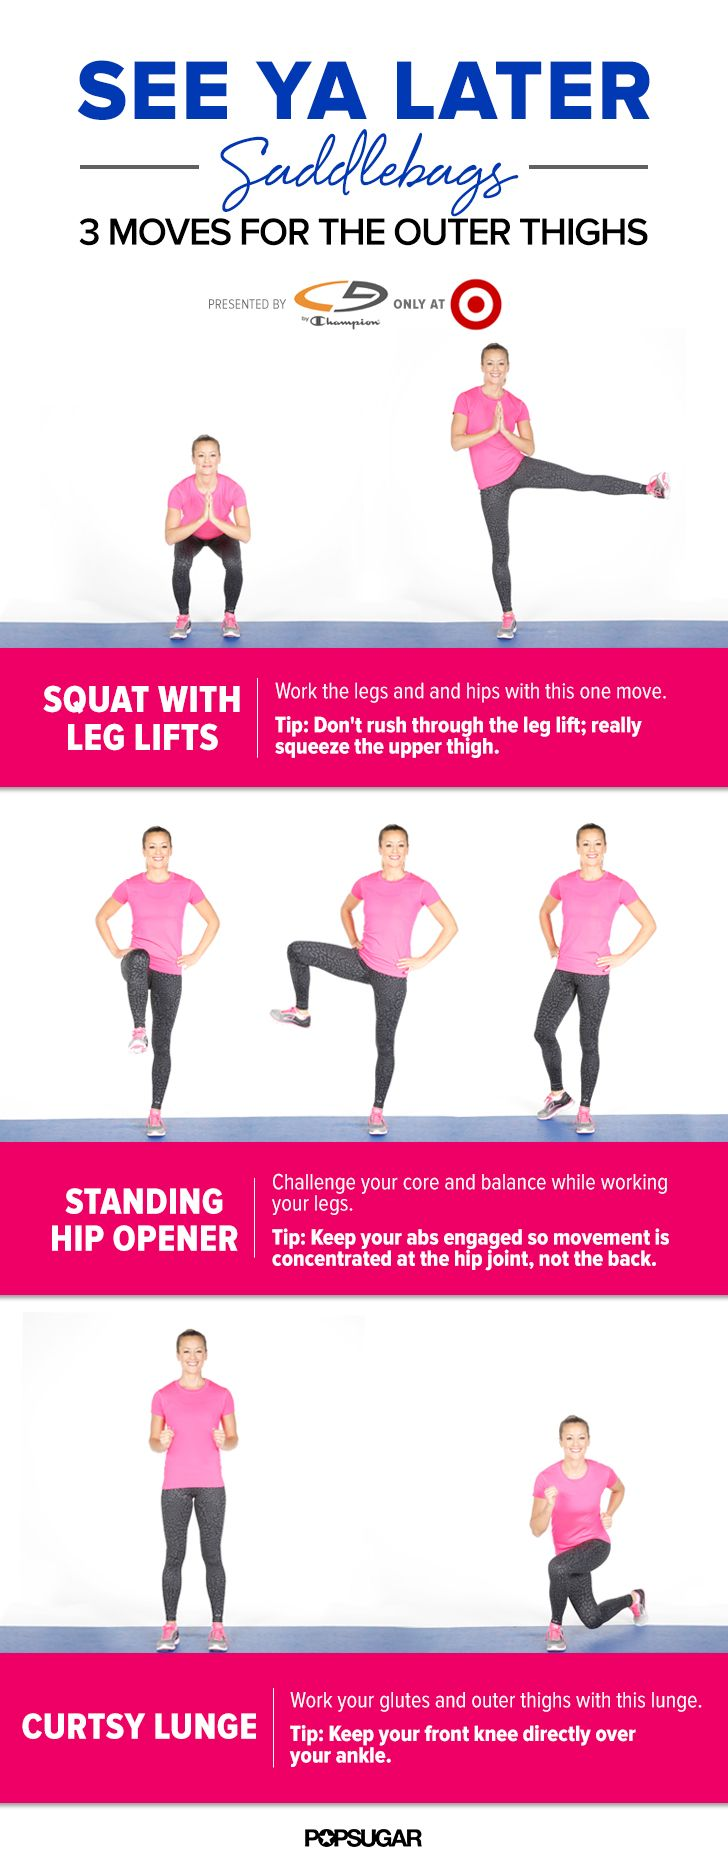 Saddlebag Workout on Pinterest | Outer Thighs, Outer Thigh Workouts ...